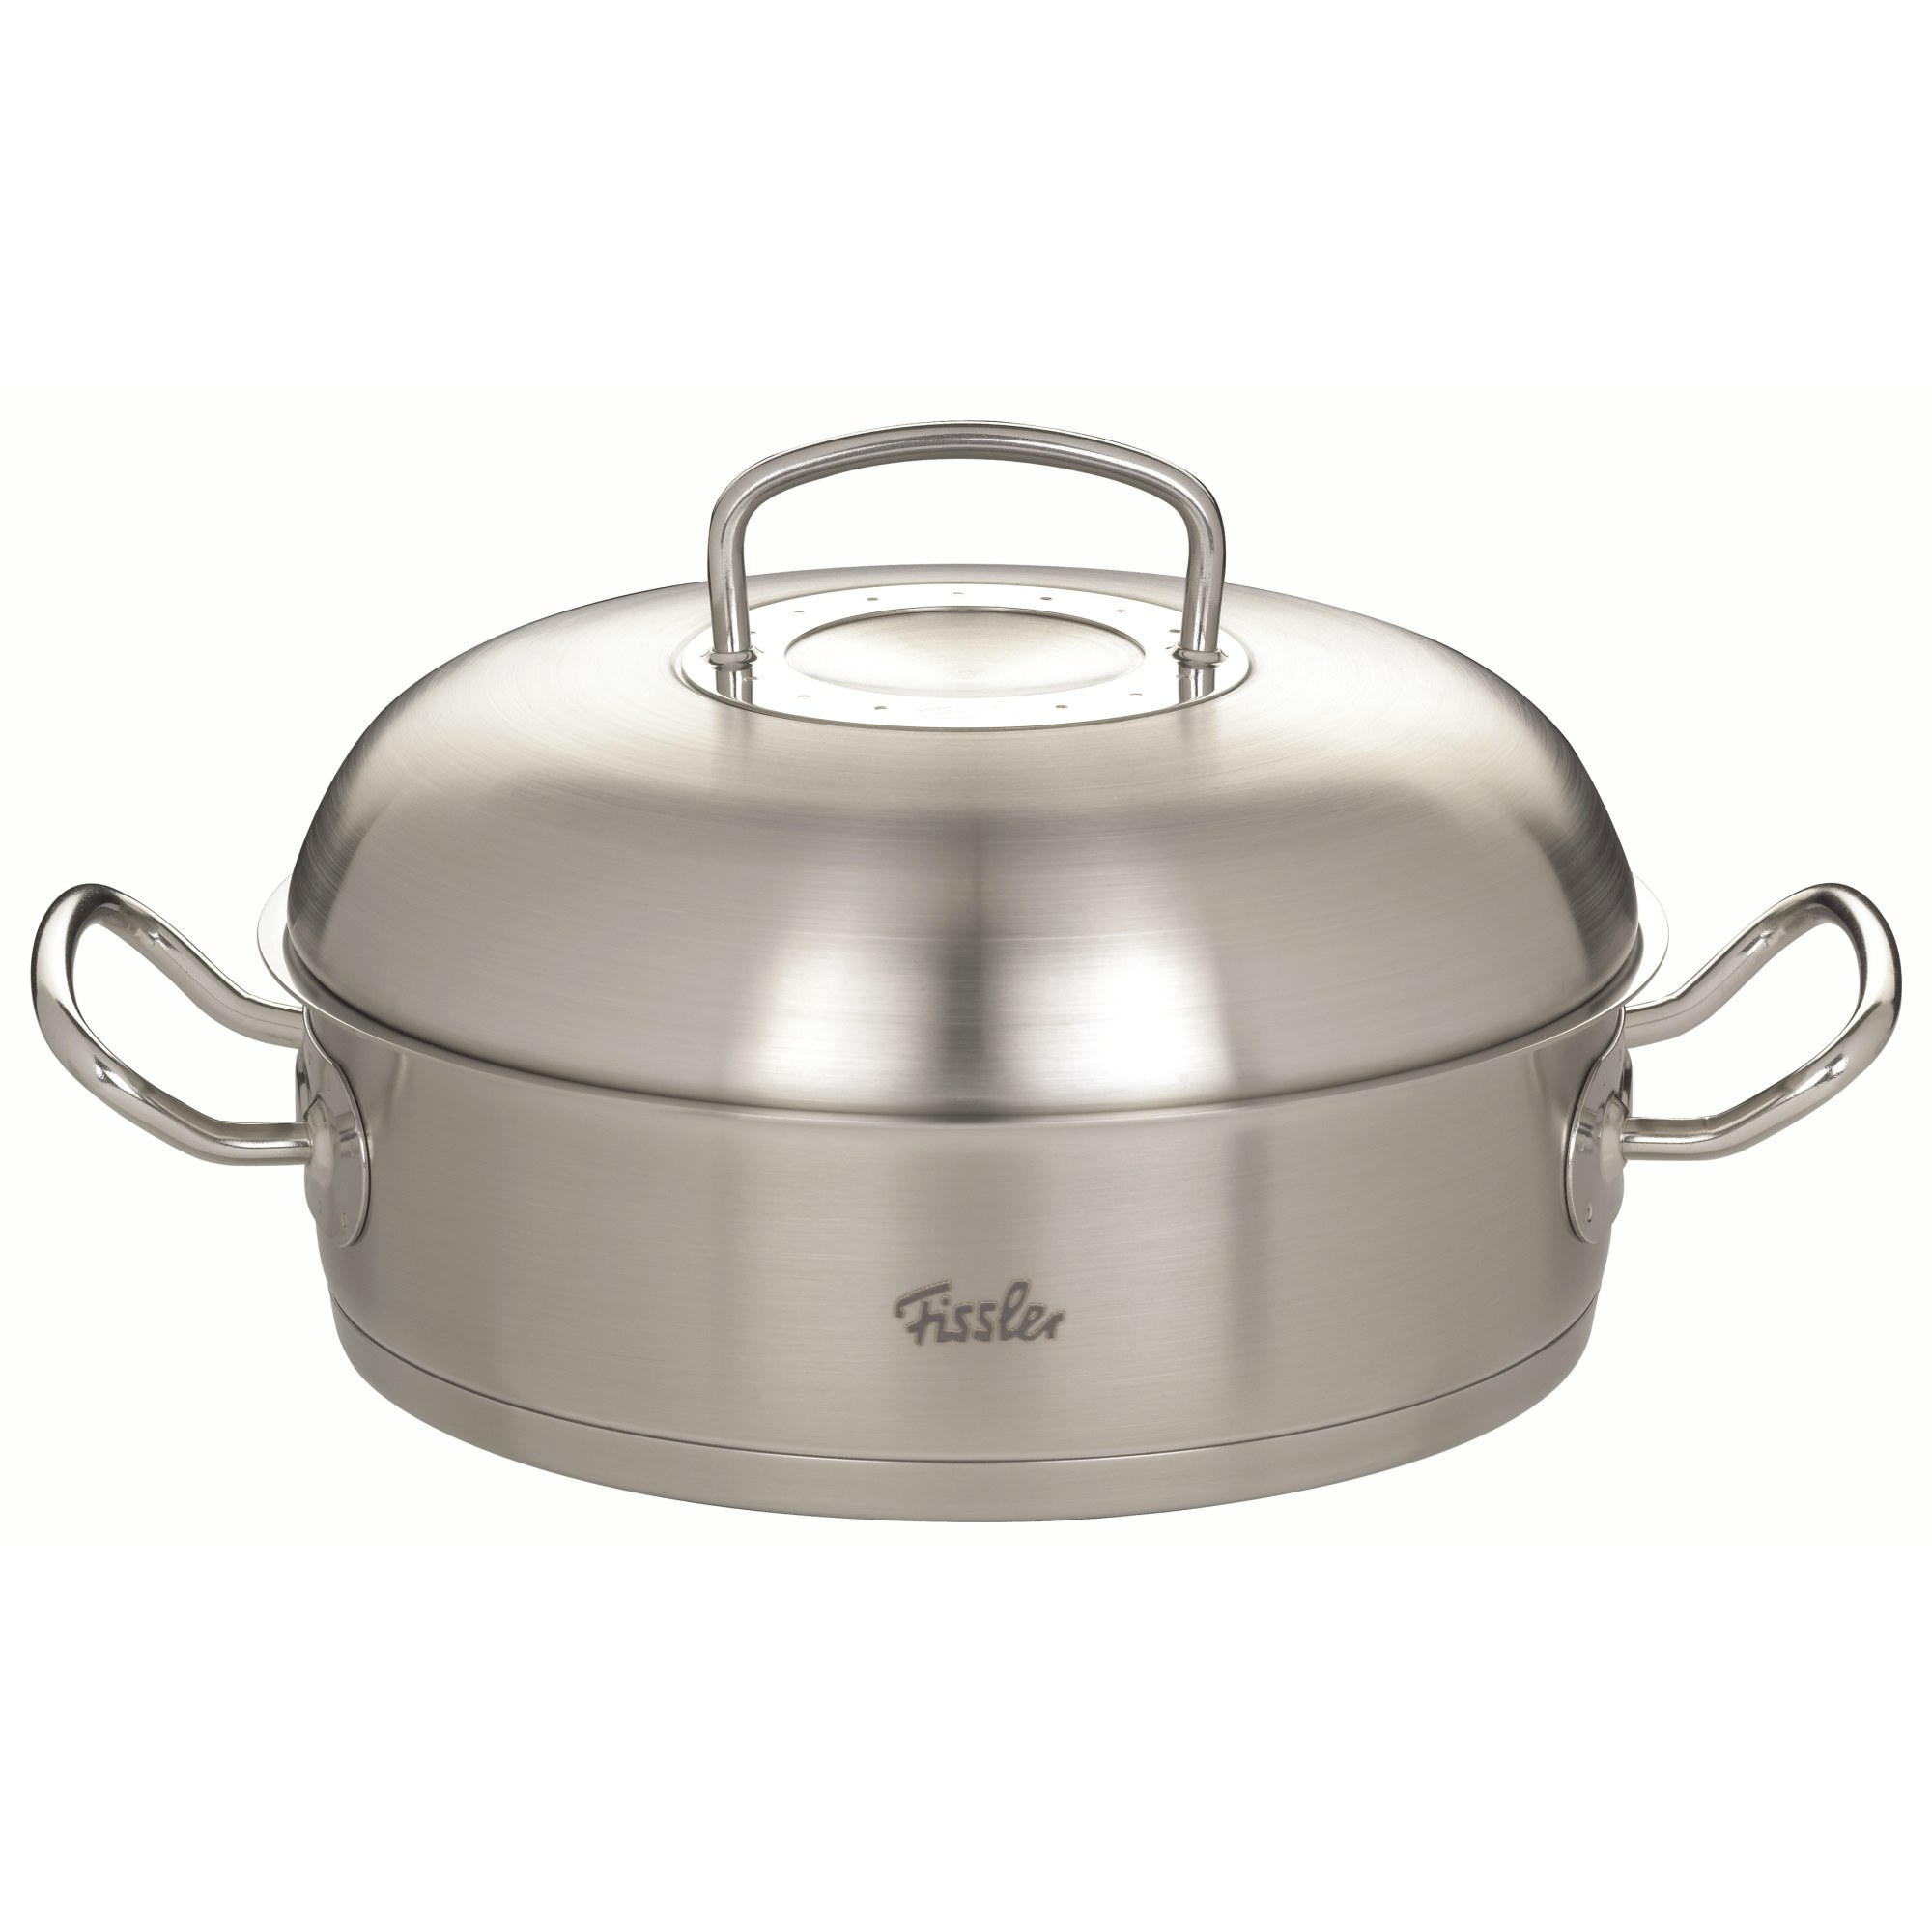 Fissler Original Profi Collection Roaster 28 Cm With Spacious Lid Roasting Dishes Stew Pots Cooking Cooking Baking 1a Neuware Englisch